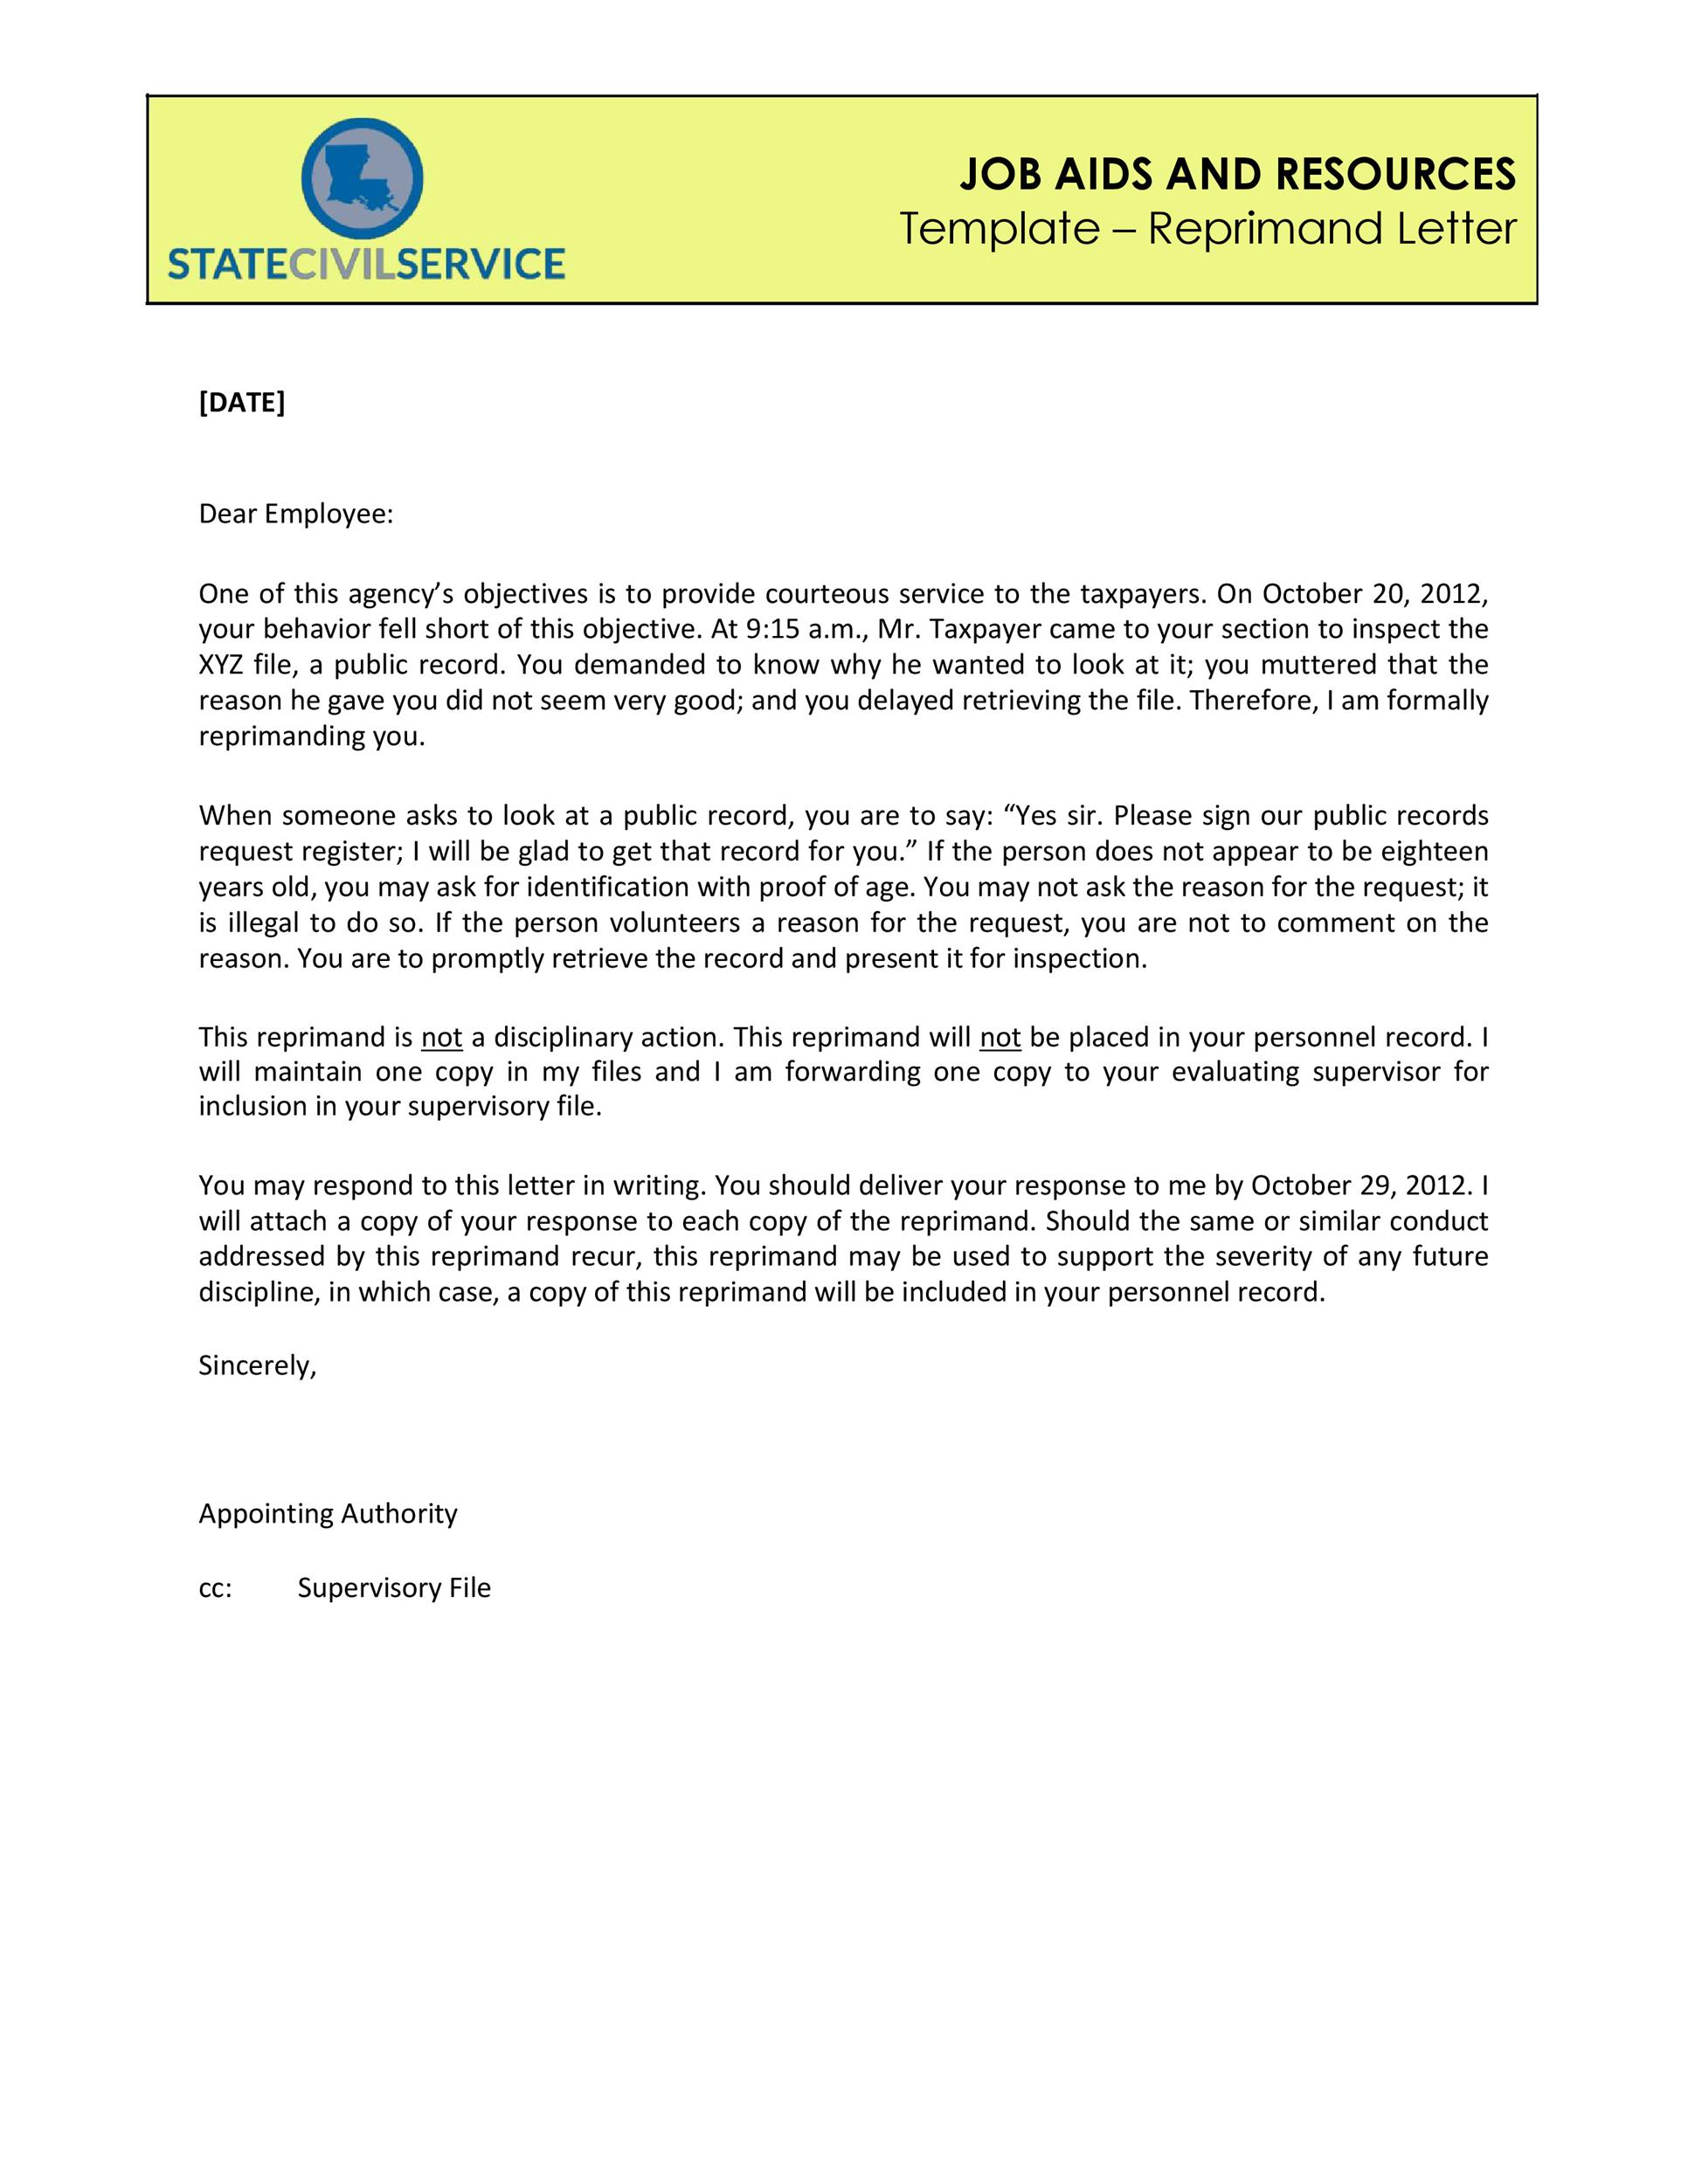 50 Effective Letters of Reprimand Templates (MS Word) ᐅ Template Lab